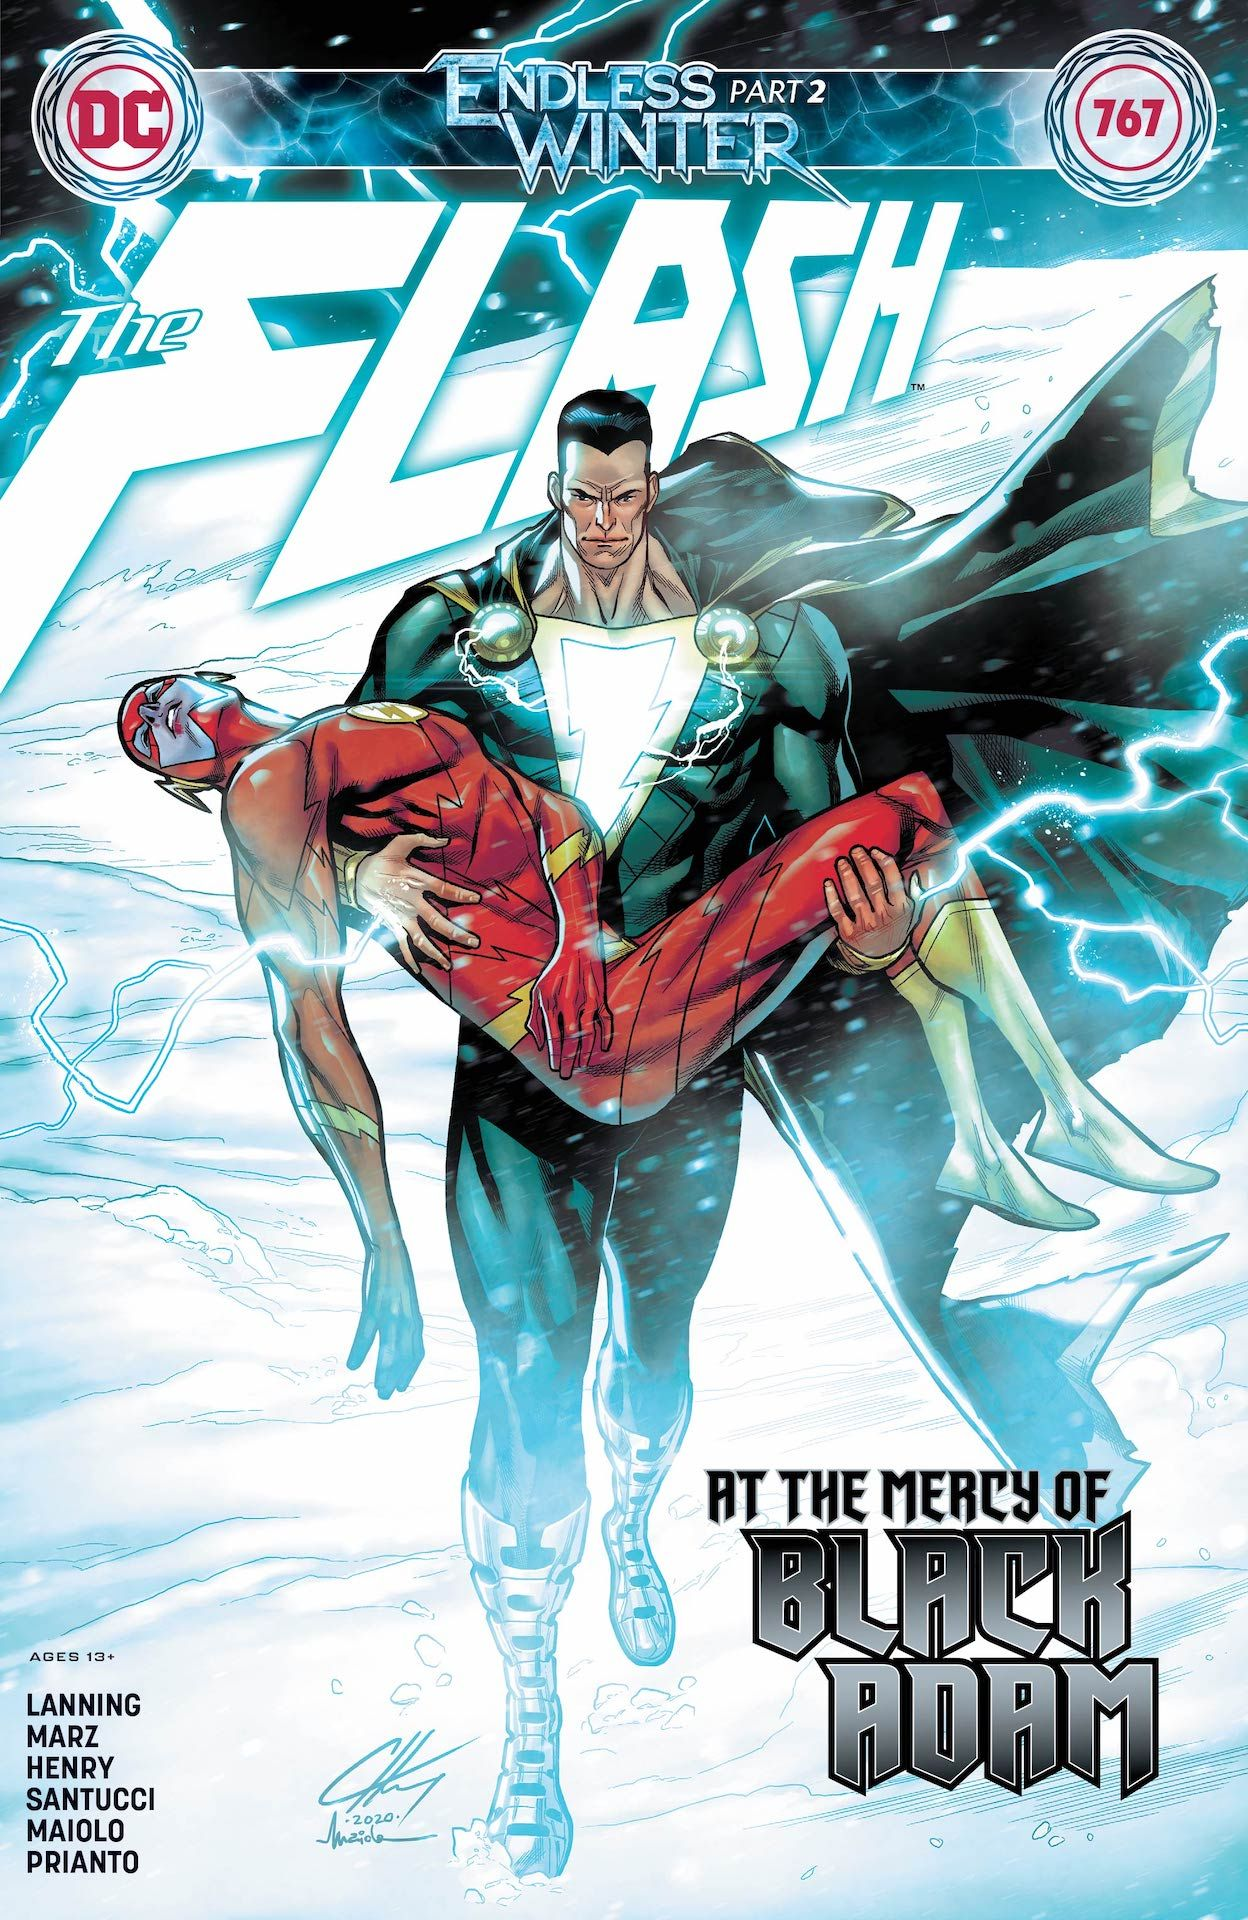 The Flash #767 preview